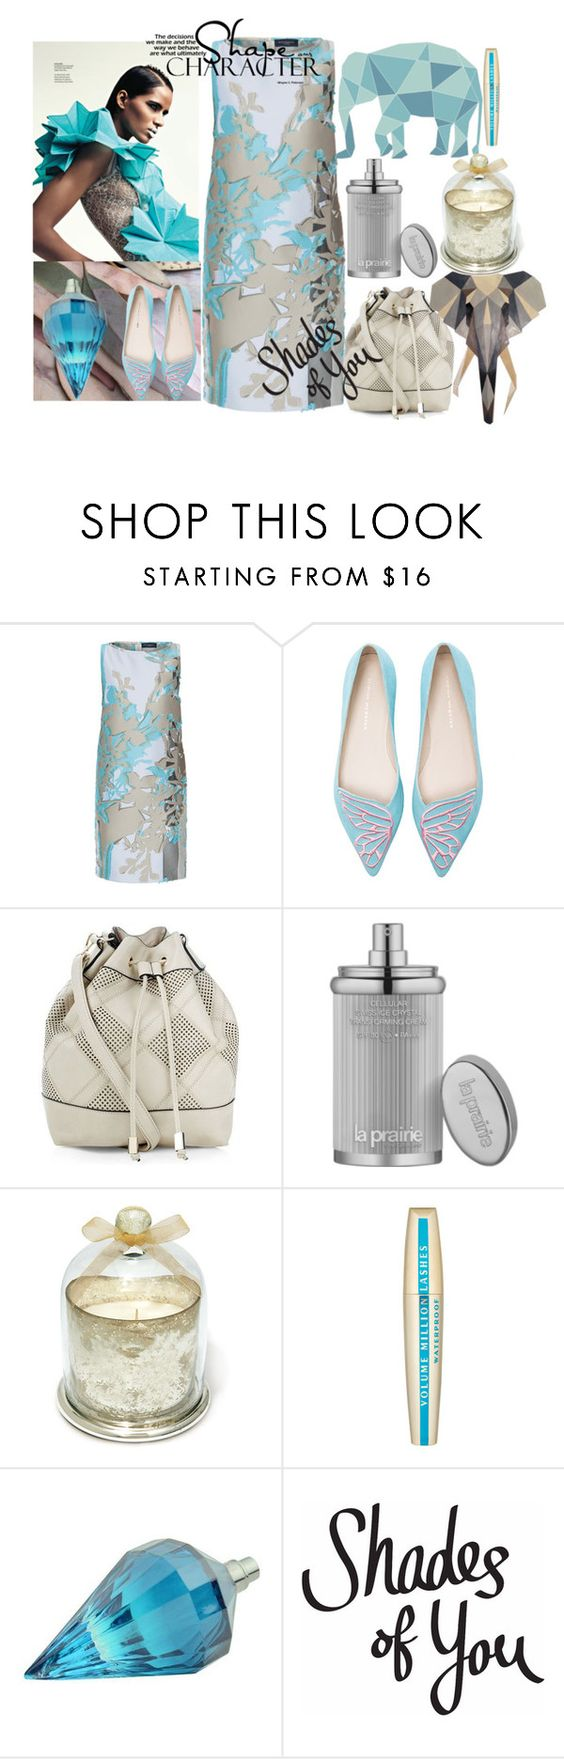 """""""Some Shades of You"""" by vittorio-1 ❤ liked on Polyvore featuring Piazza Sempione, Sophia Webster, New Look, La Prairie and L'Oréal Paris"""